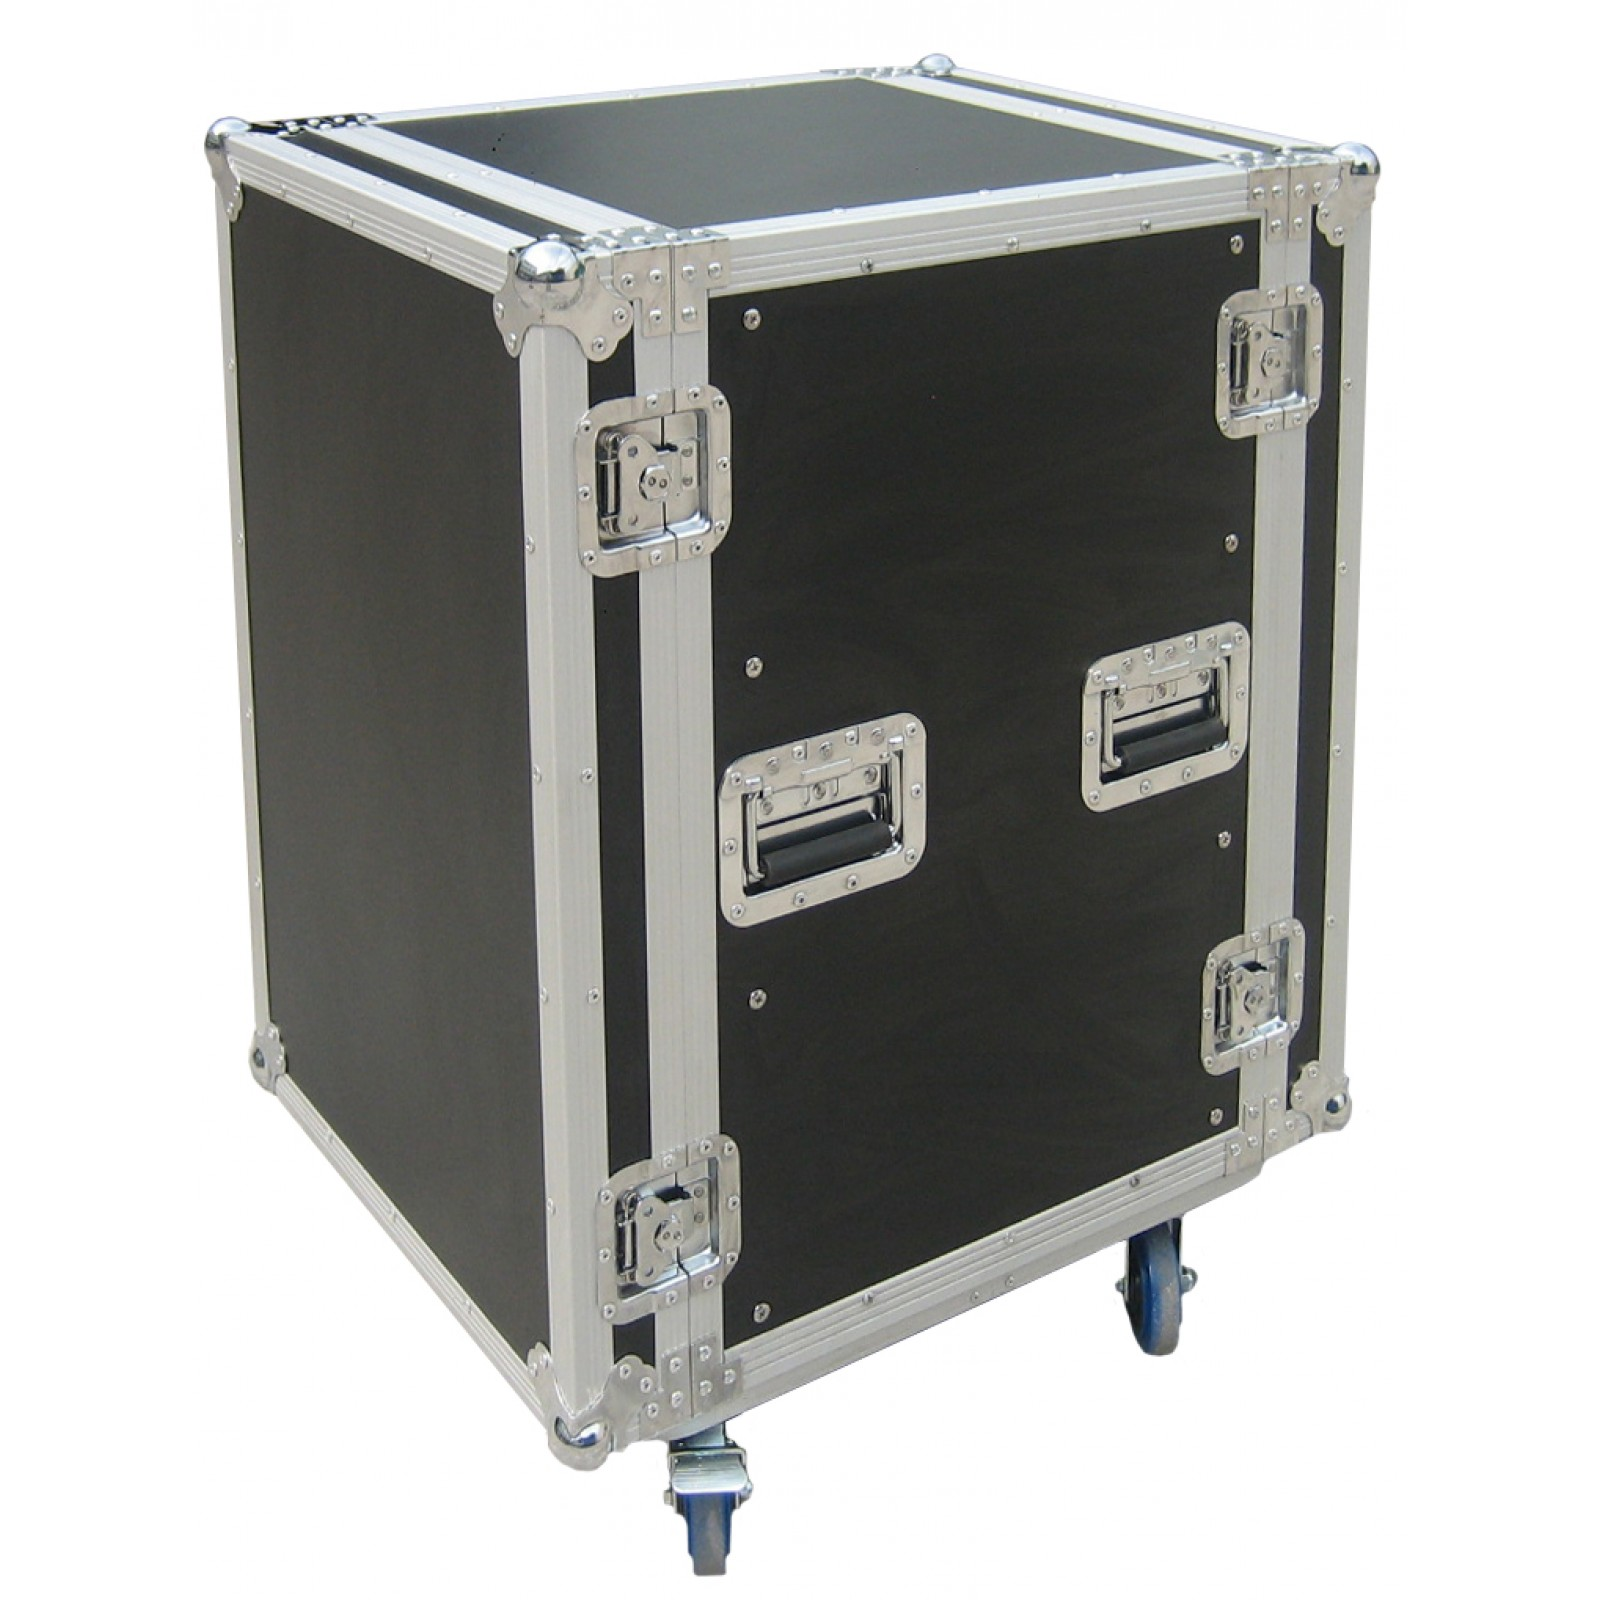 Jb Lighting Varyled A7 Zoom Briteq Rack Case 16u Flightcases